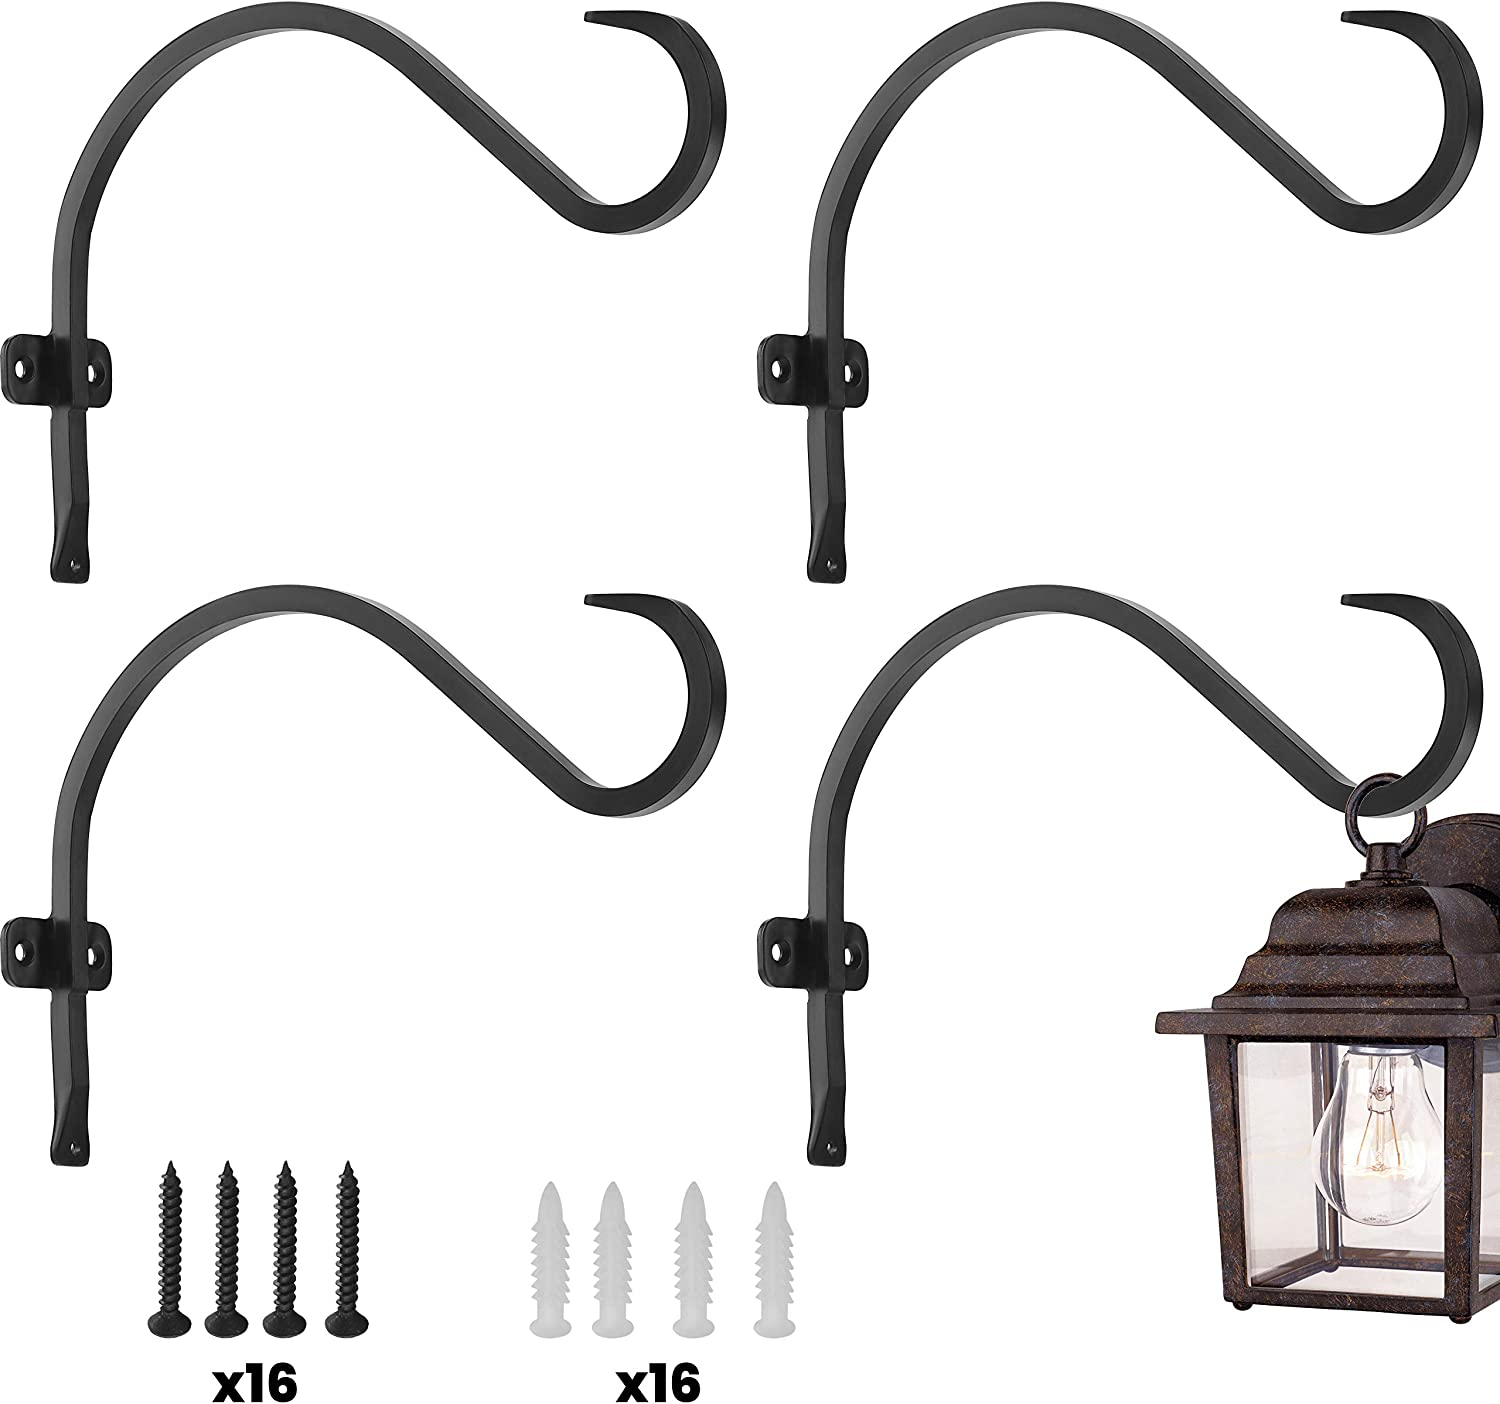 Hanging Plant Bracket (4 Pack - 12 inches), Sturdy and Stable Wrought Iron Plant Hanger Bracket Outdoor, Strong Metal Hooks for Hanging Plant, Flower Basket/Lantern/Bird Feeder Hanger (4Pack-12inches)